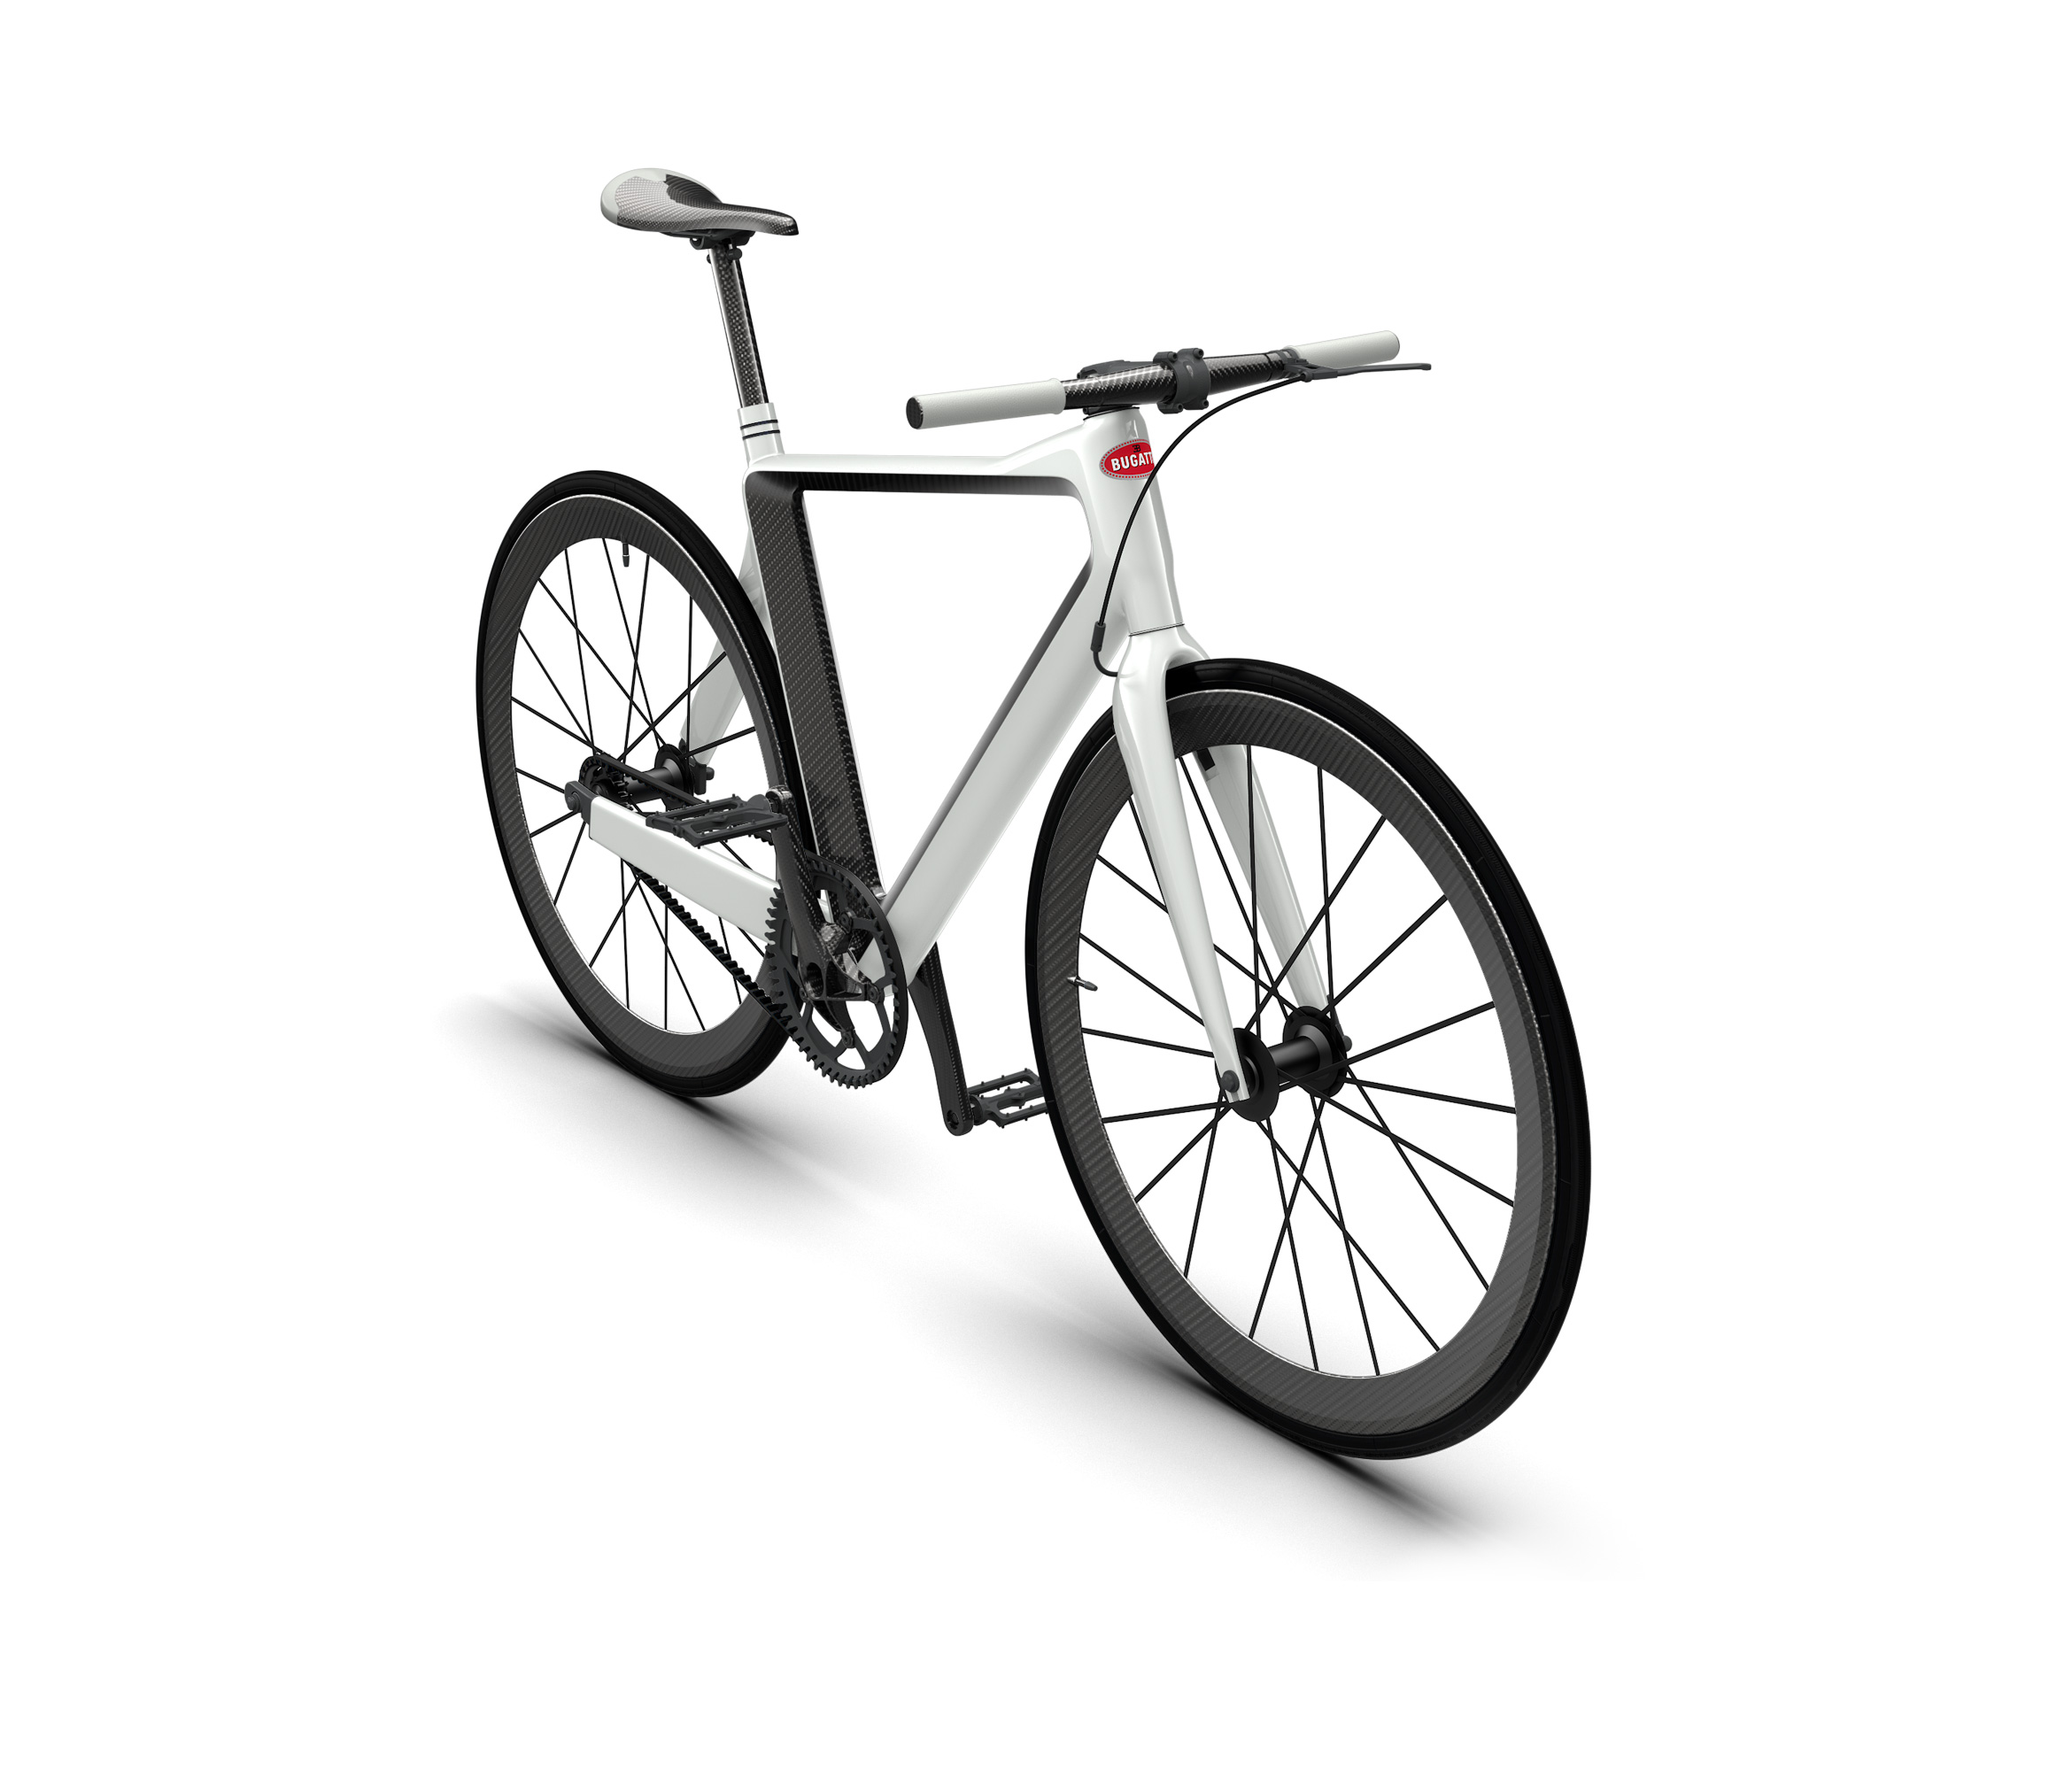 PG Bugatti bicycle (9)